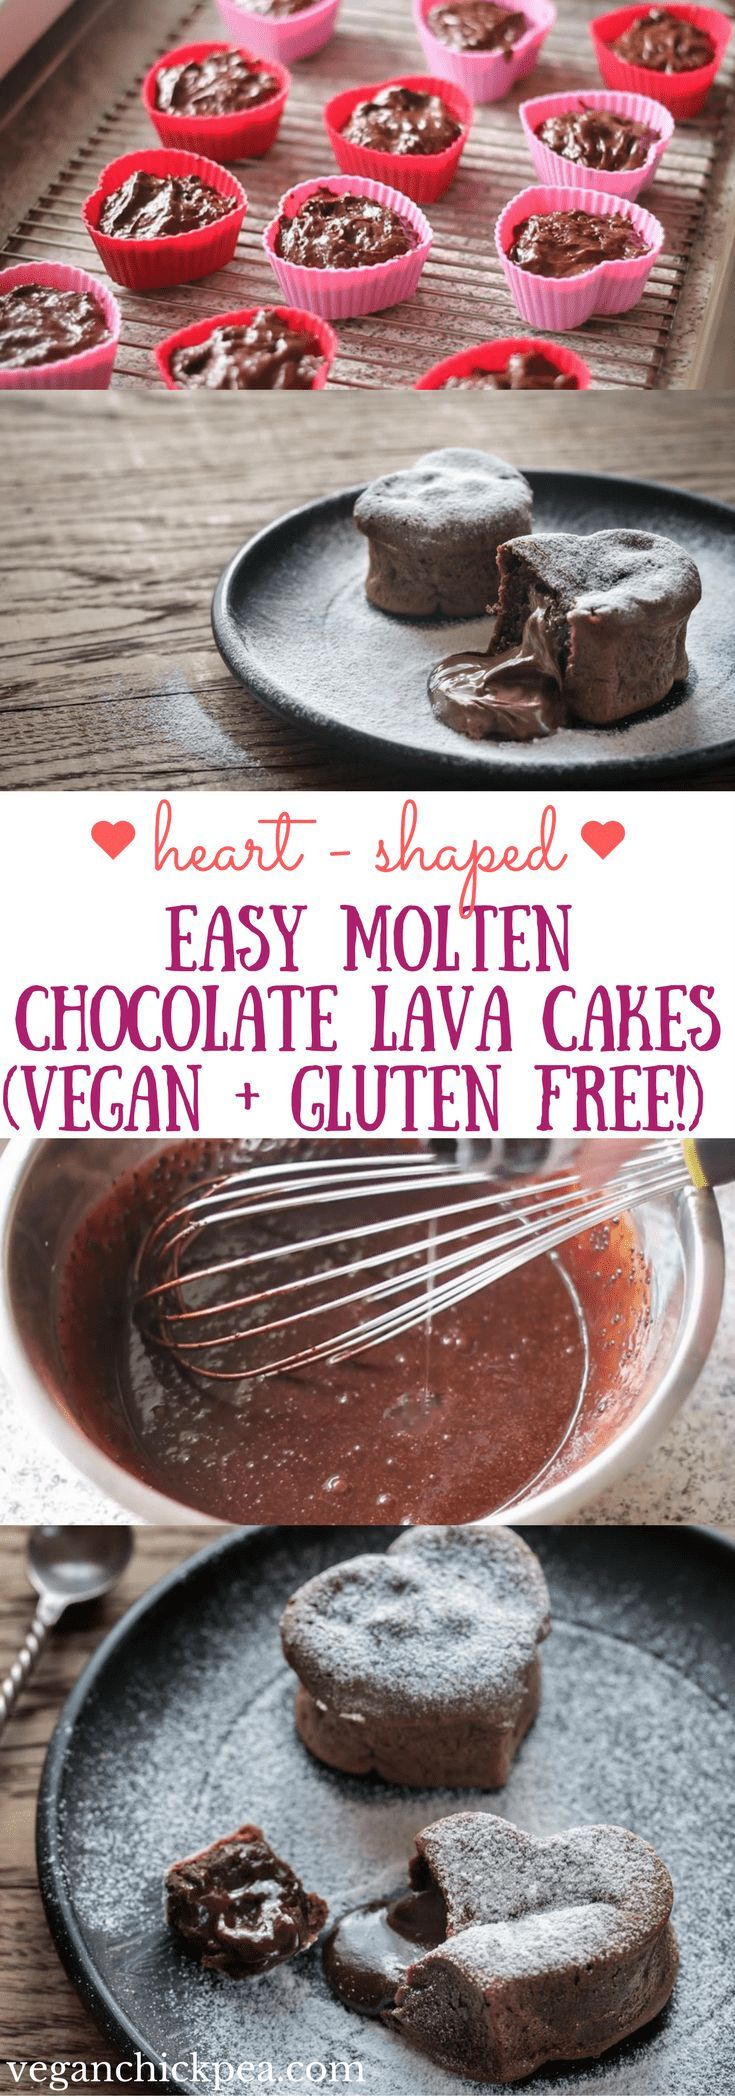 Perfect for Valentine's Day (or any day!), this vegan and gluten free Easy Molten Chocolate Lava Cake recipe will impress your dinner guests or special someone with their beautiful heart shape and warm gooey center! With only 10 ingredients and 30 minutes to prep and cook, you'll have a simple yet elegant dessert in no time. #valentinesday #dessert #vegan #glutenfree